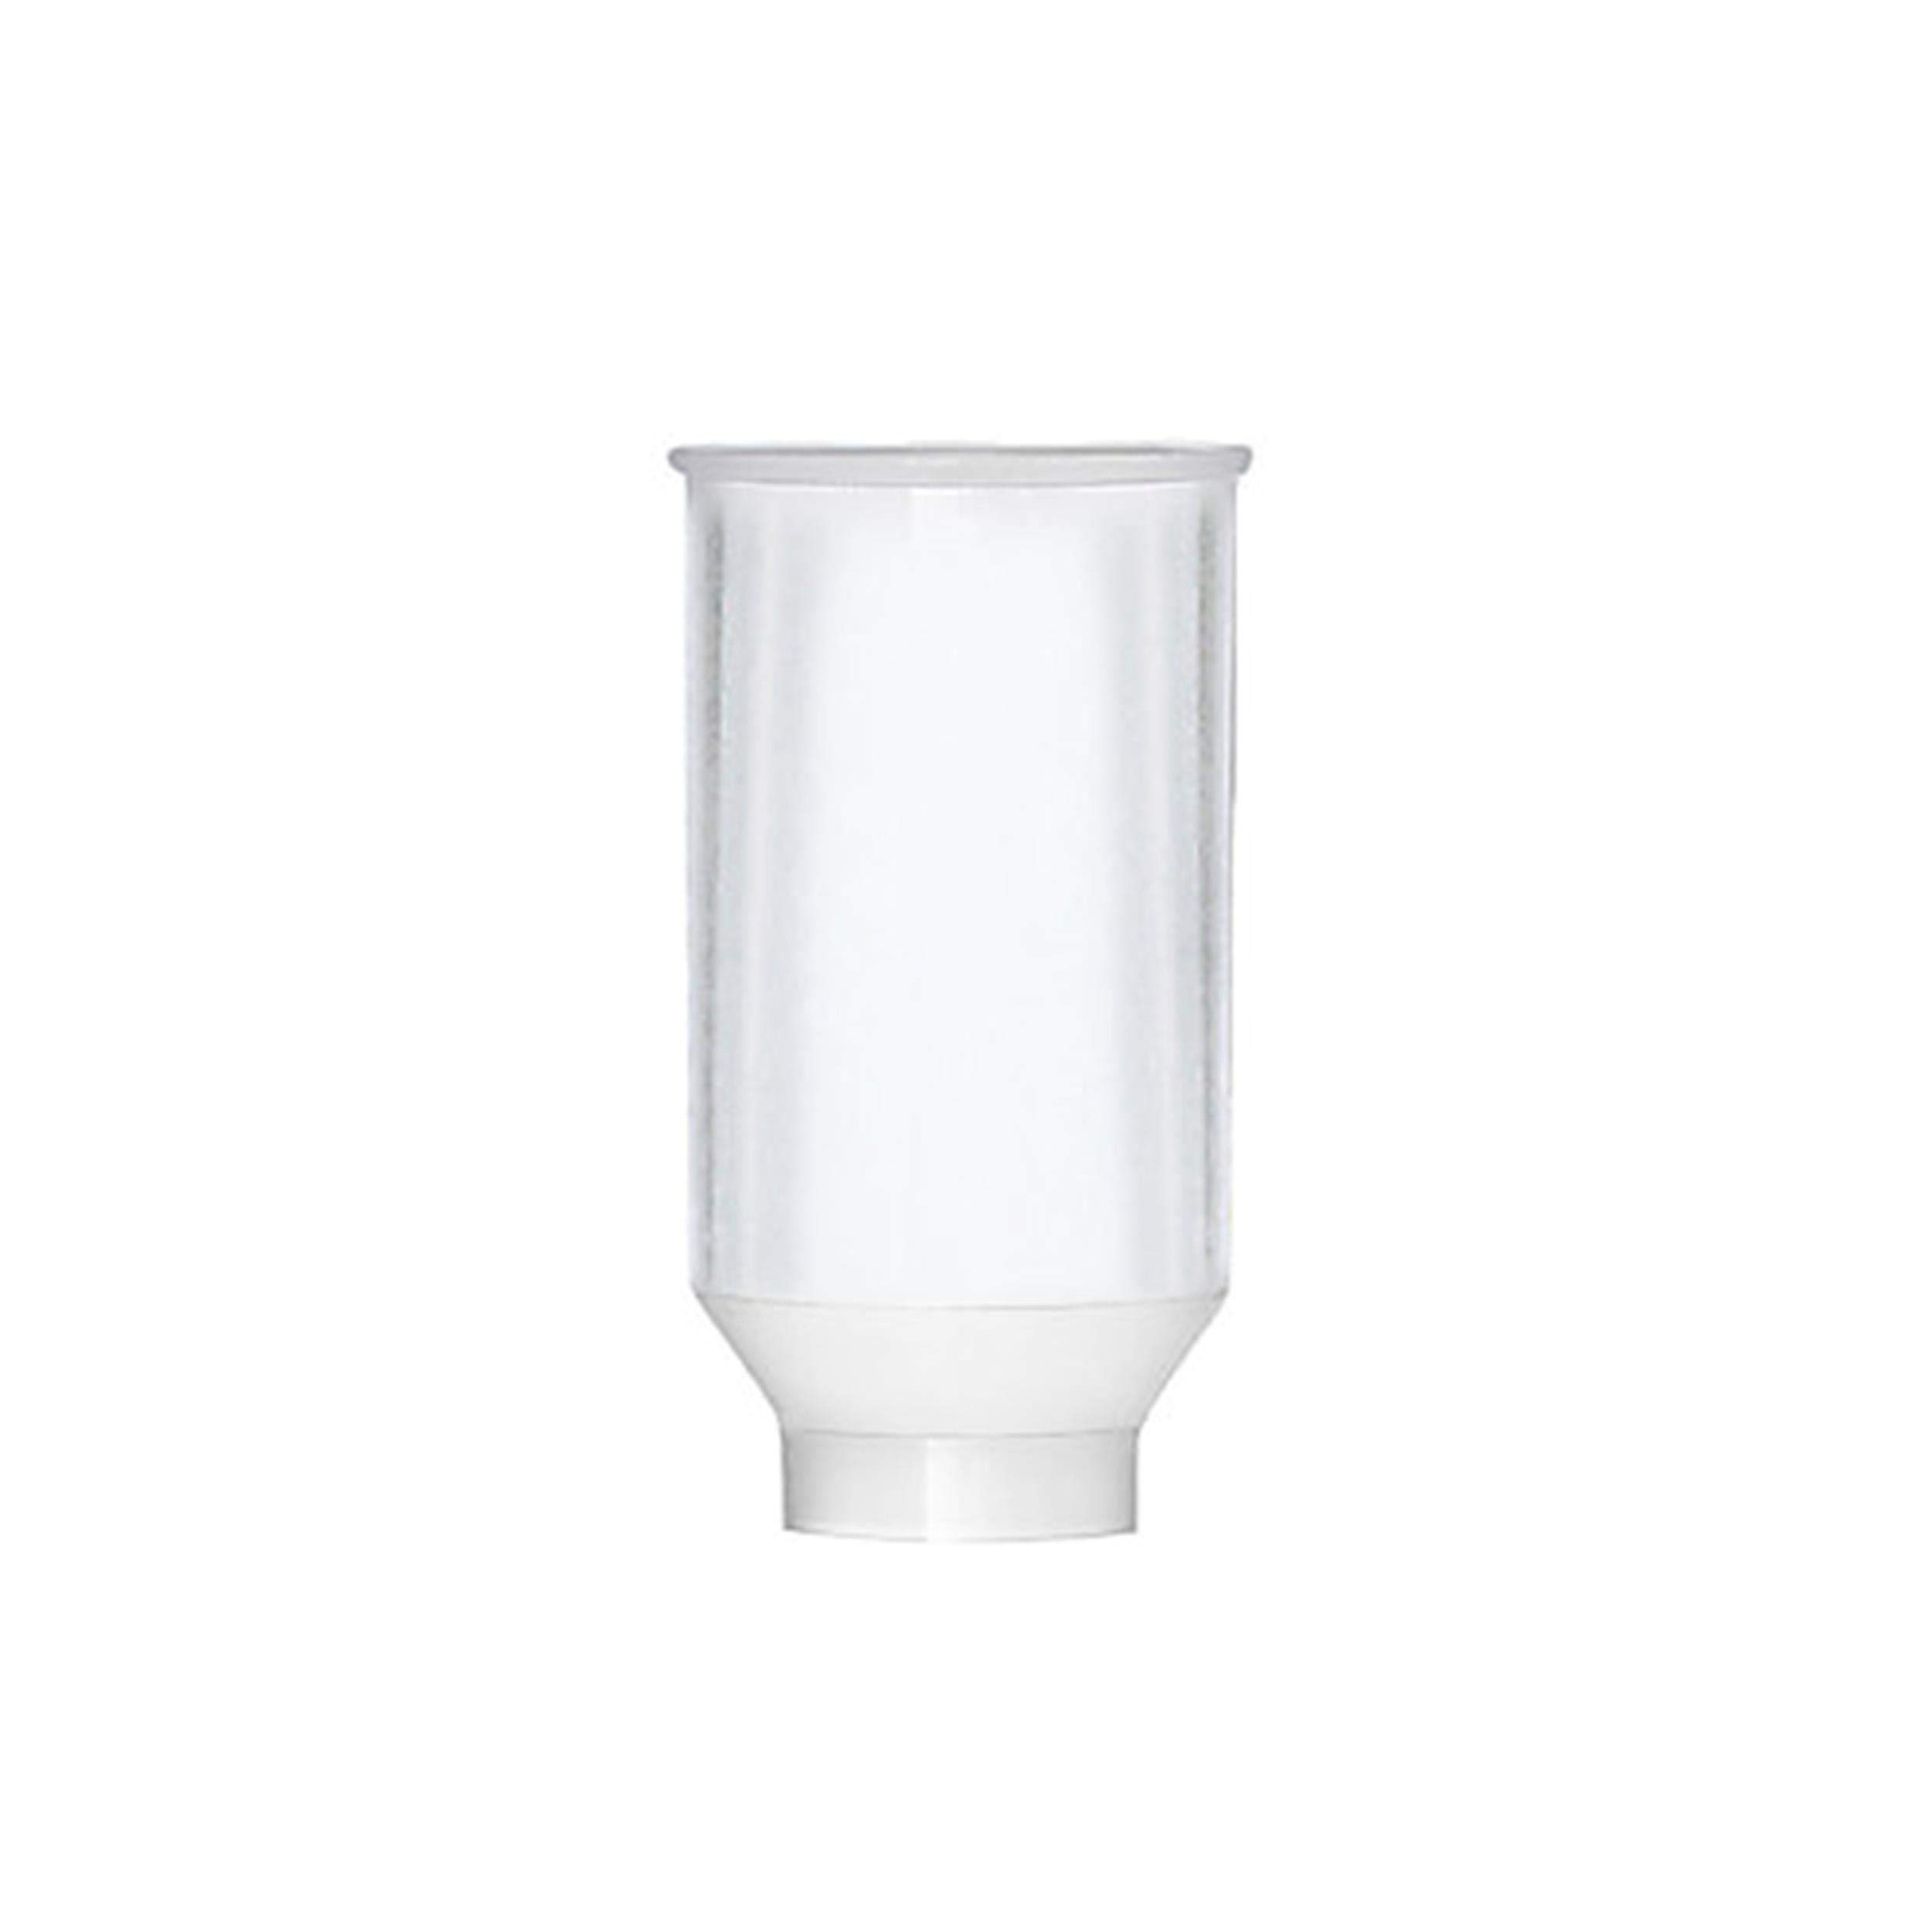 Zymo Research C1032-25 Conical Reservoir, 50 ml Capacity (Pack of 25)